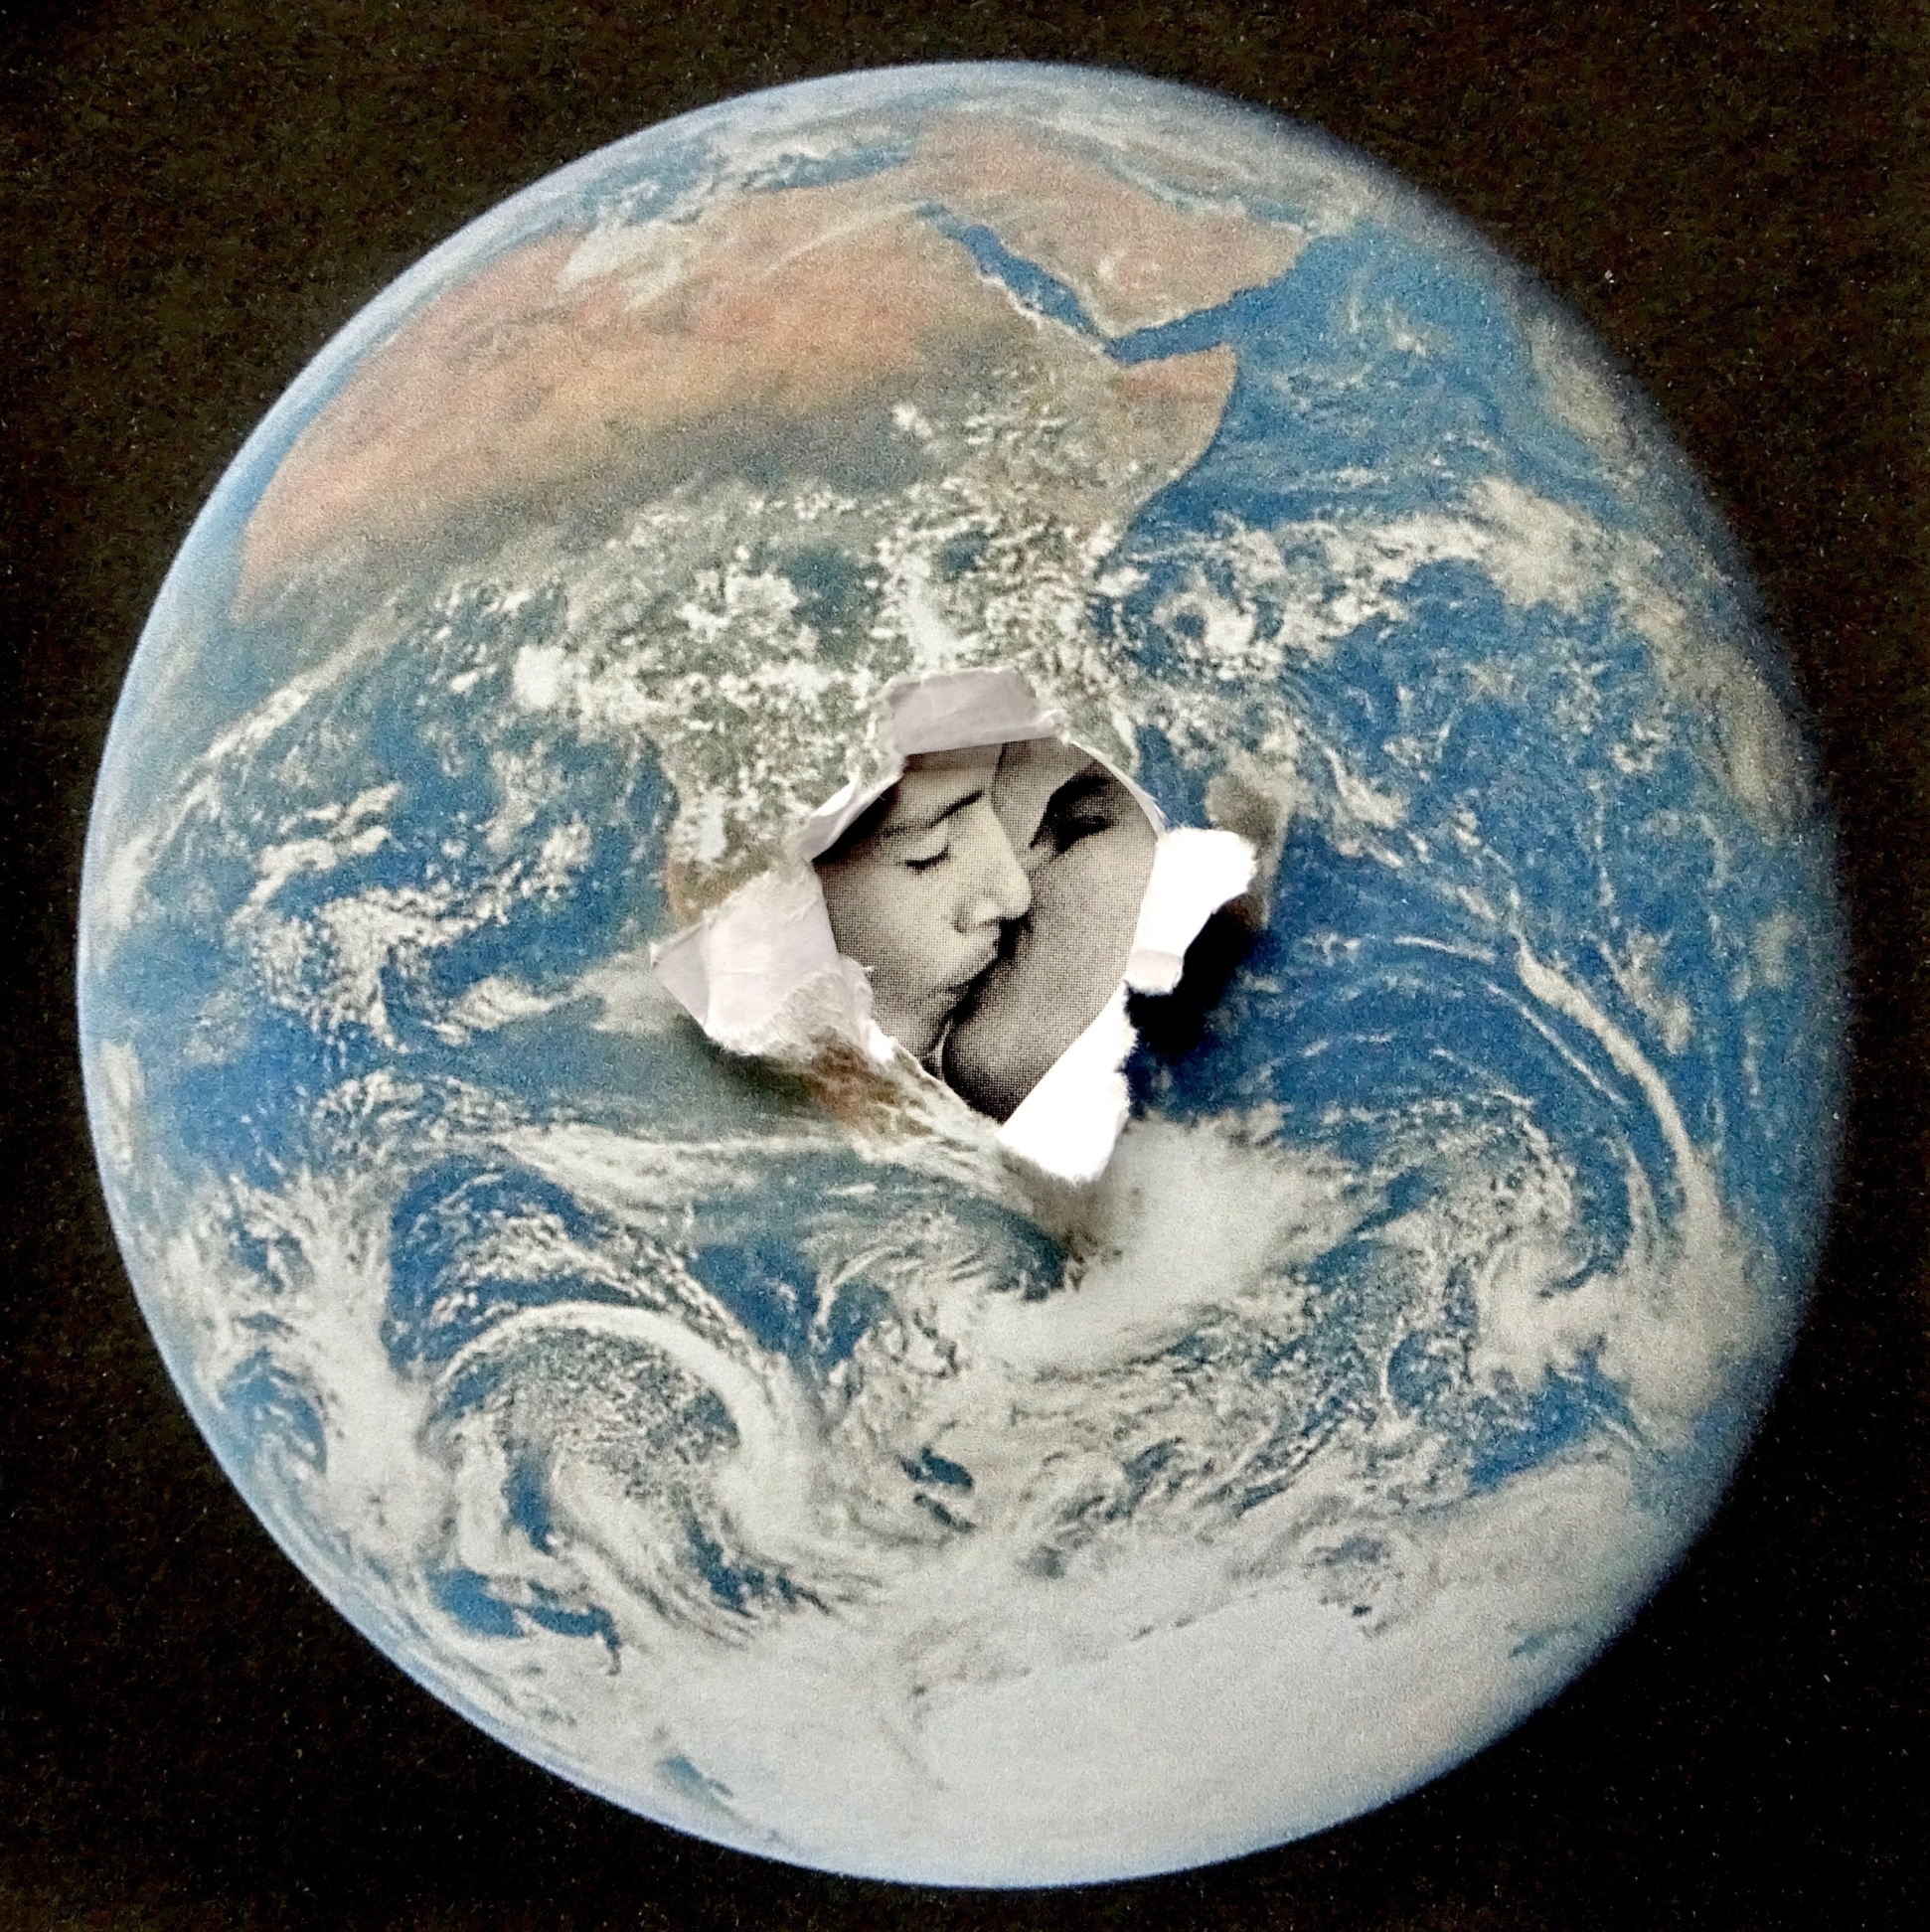 A collage with an image of the earth and a kissing couple that is bursting out in the centre.